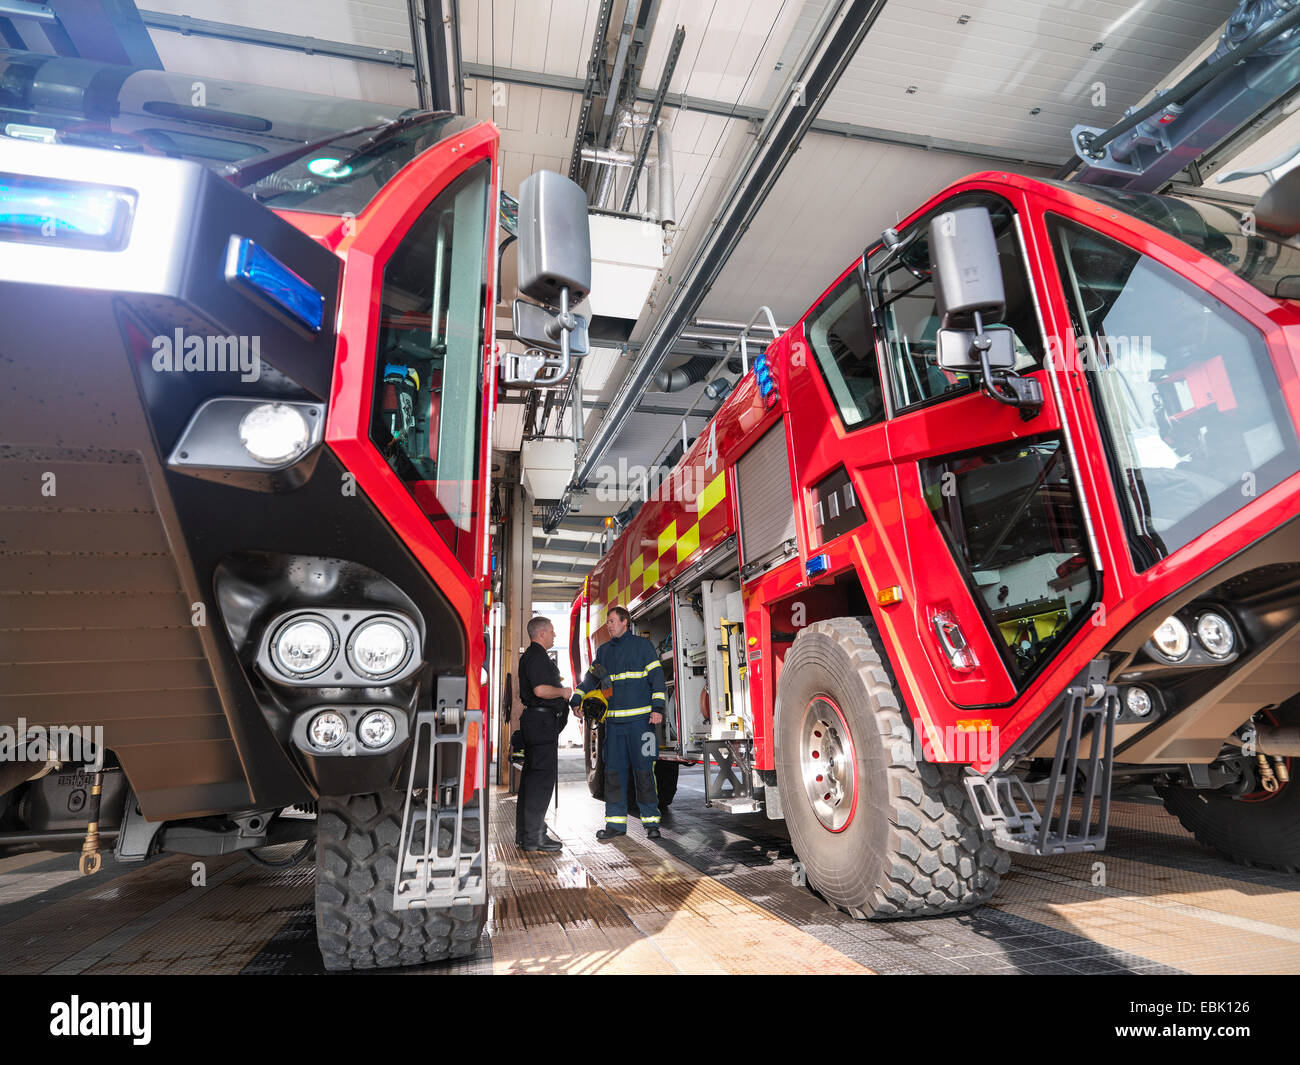 Firemen in discussion between fire engines in airport fire station - Stock Image